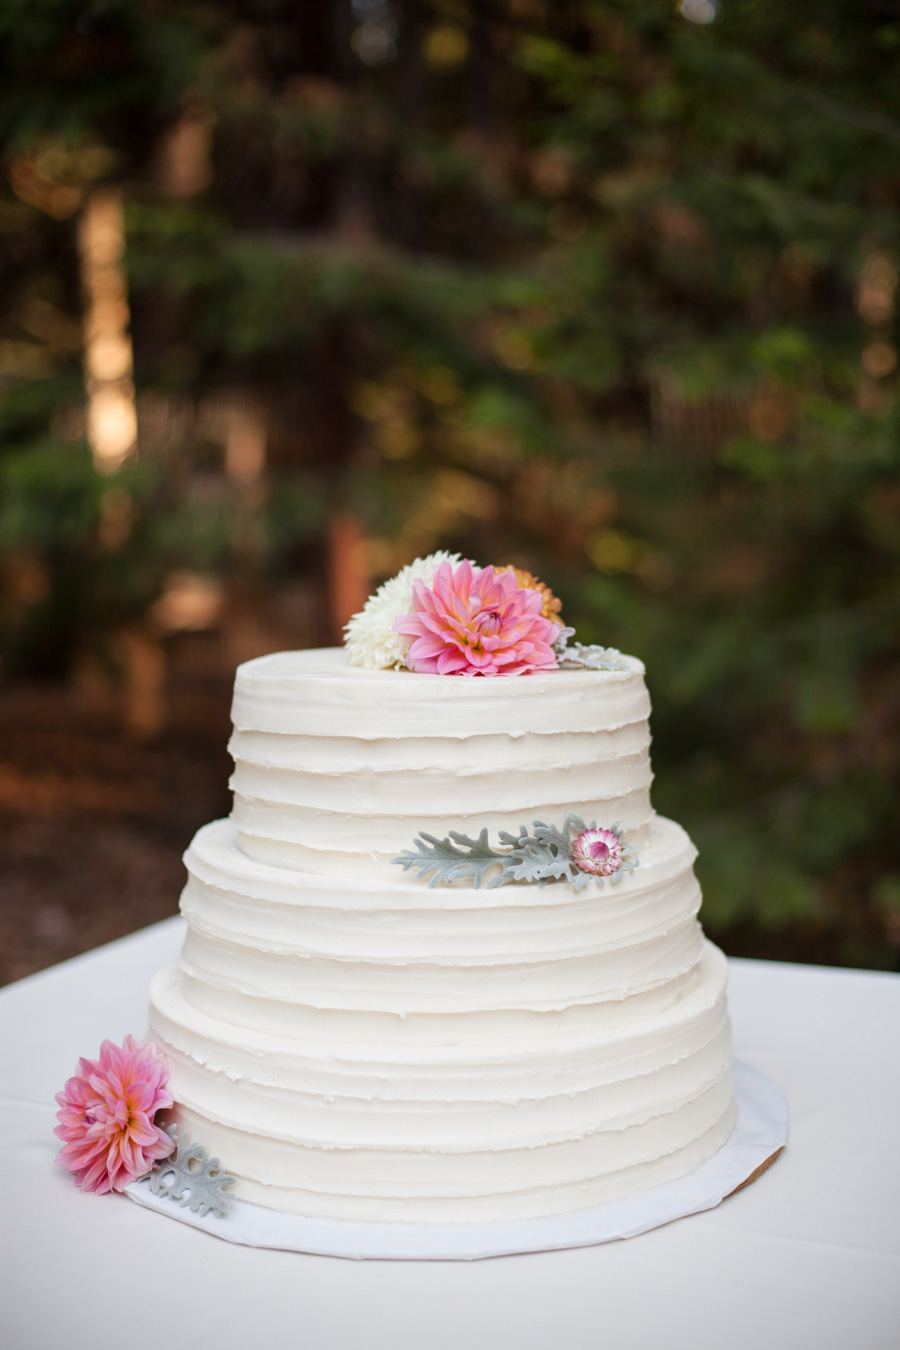 Simple Tiered Wedding Cake with Farm Fresh Flowers